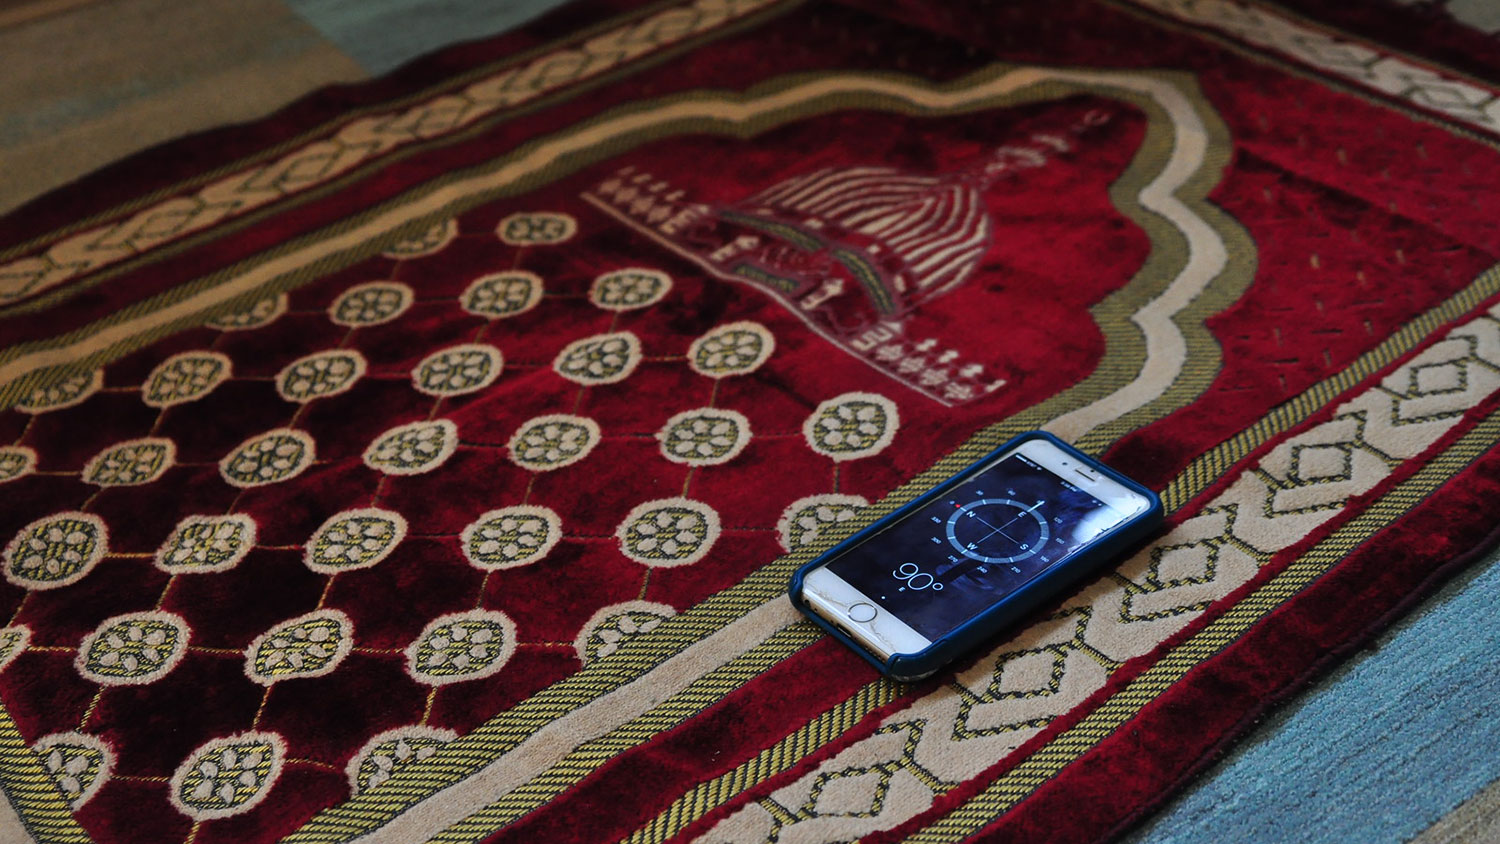 Prayer rug and compass